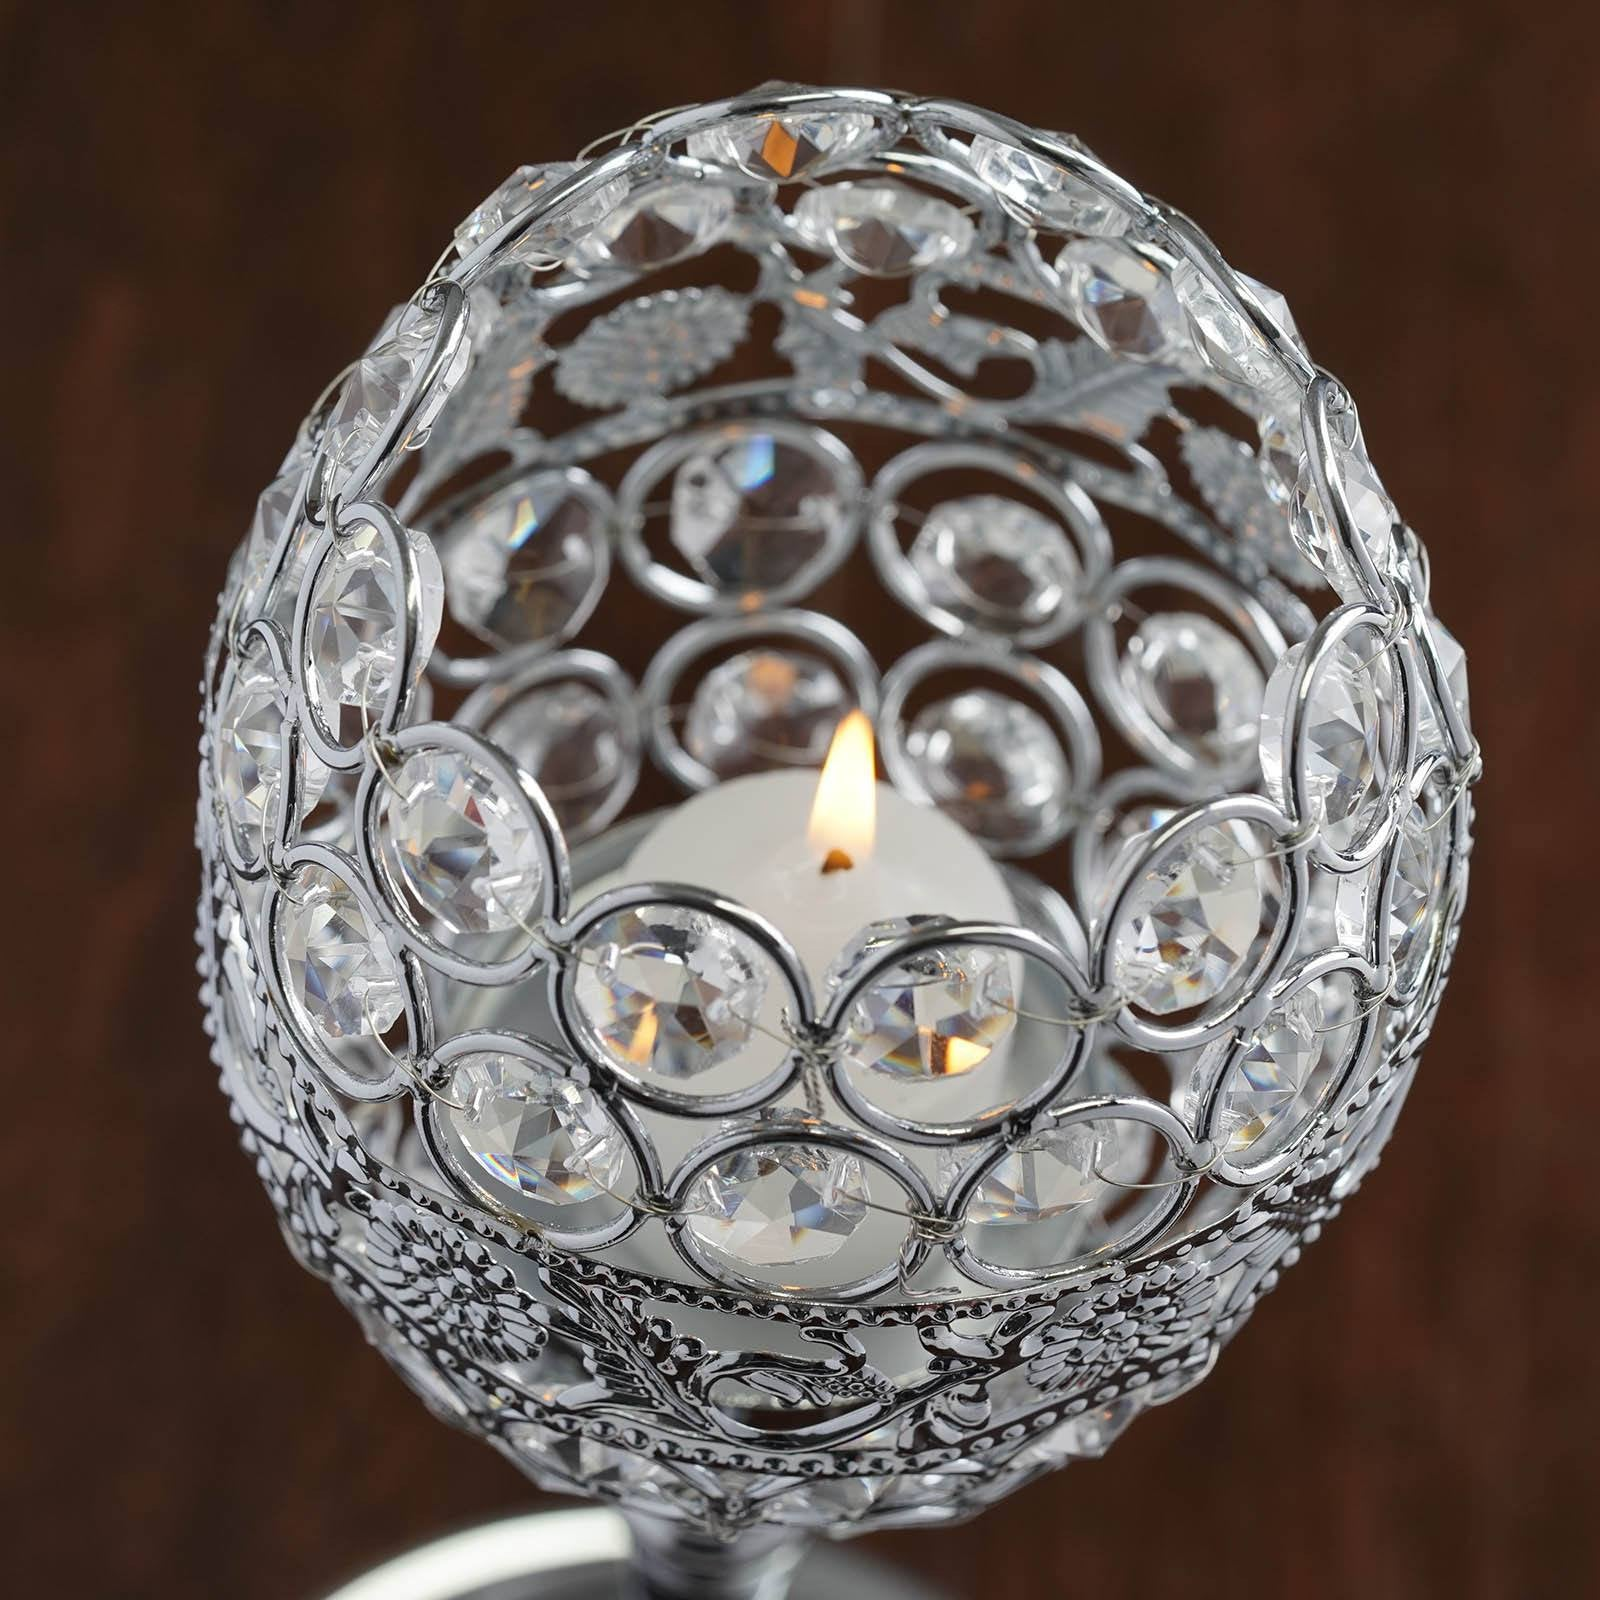 Decorative Votive Tealight Crystal Candle Holder Goblet Wedding